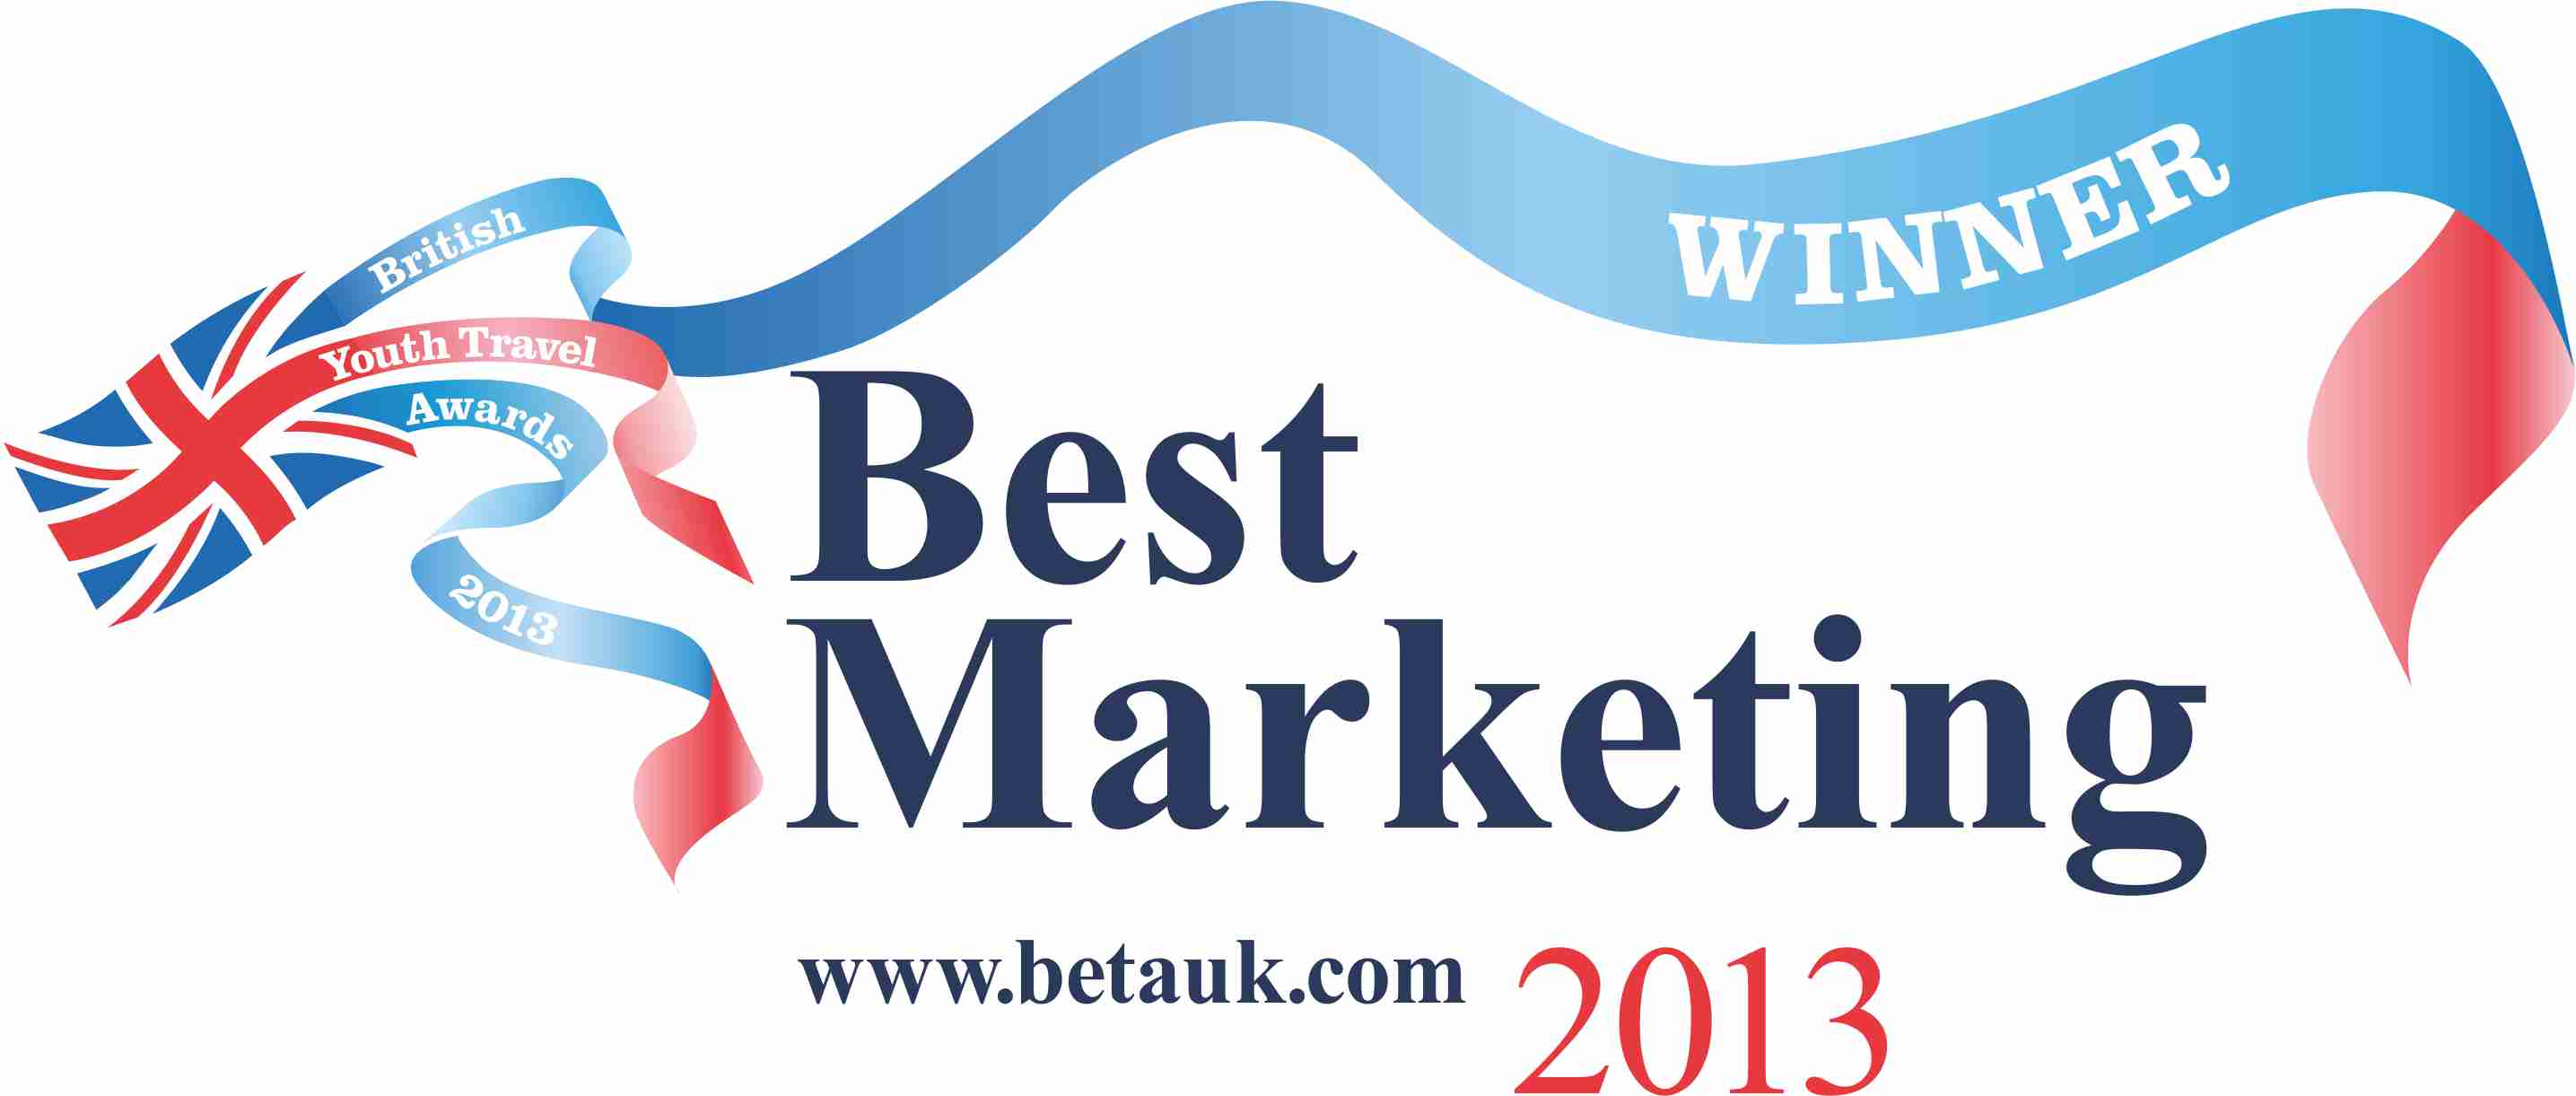 Best Marketing Winner